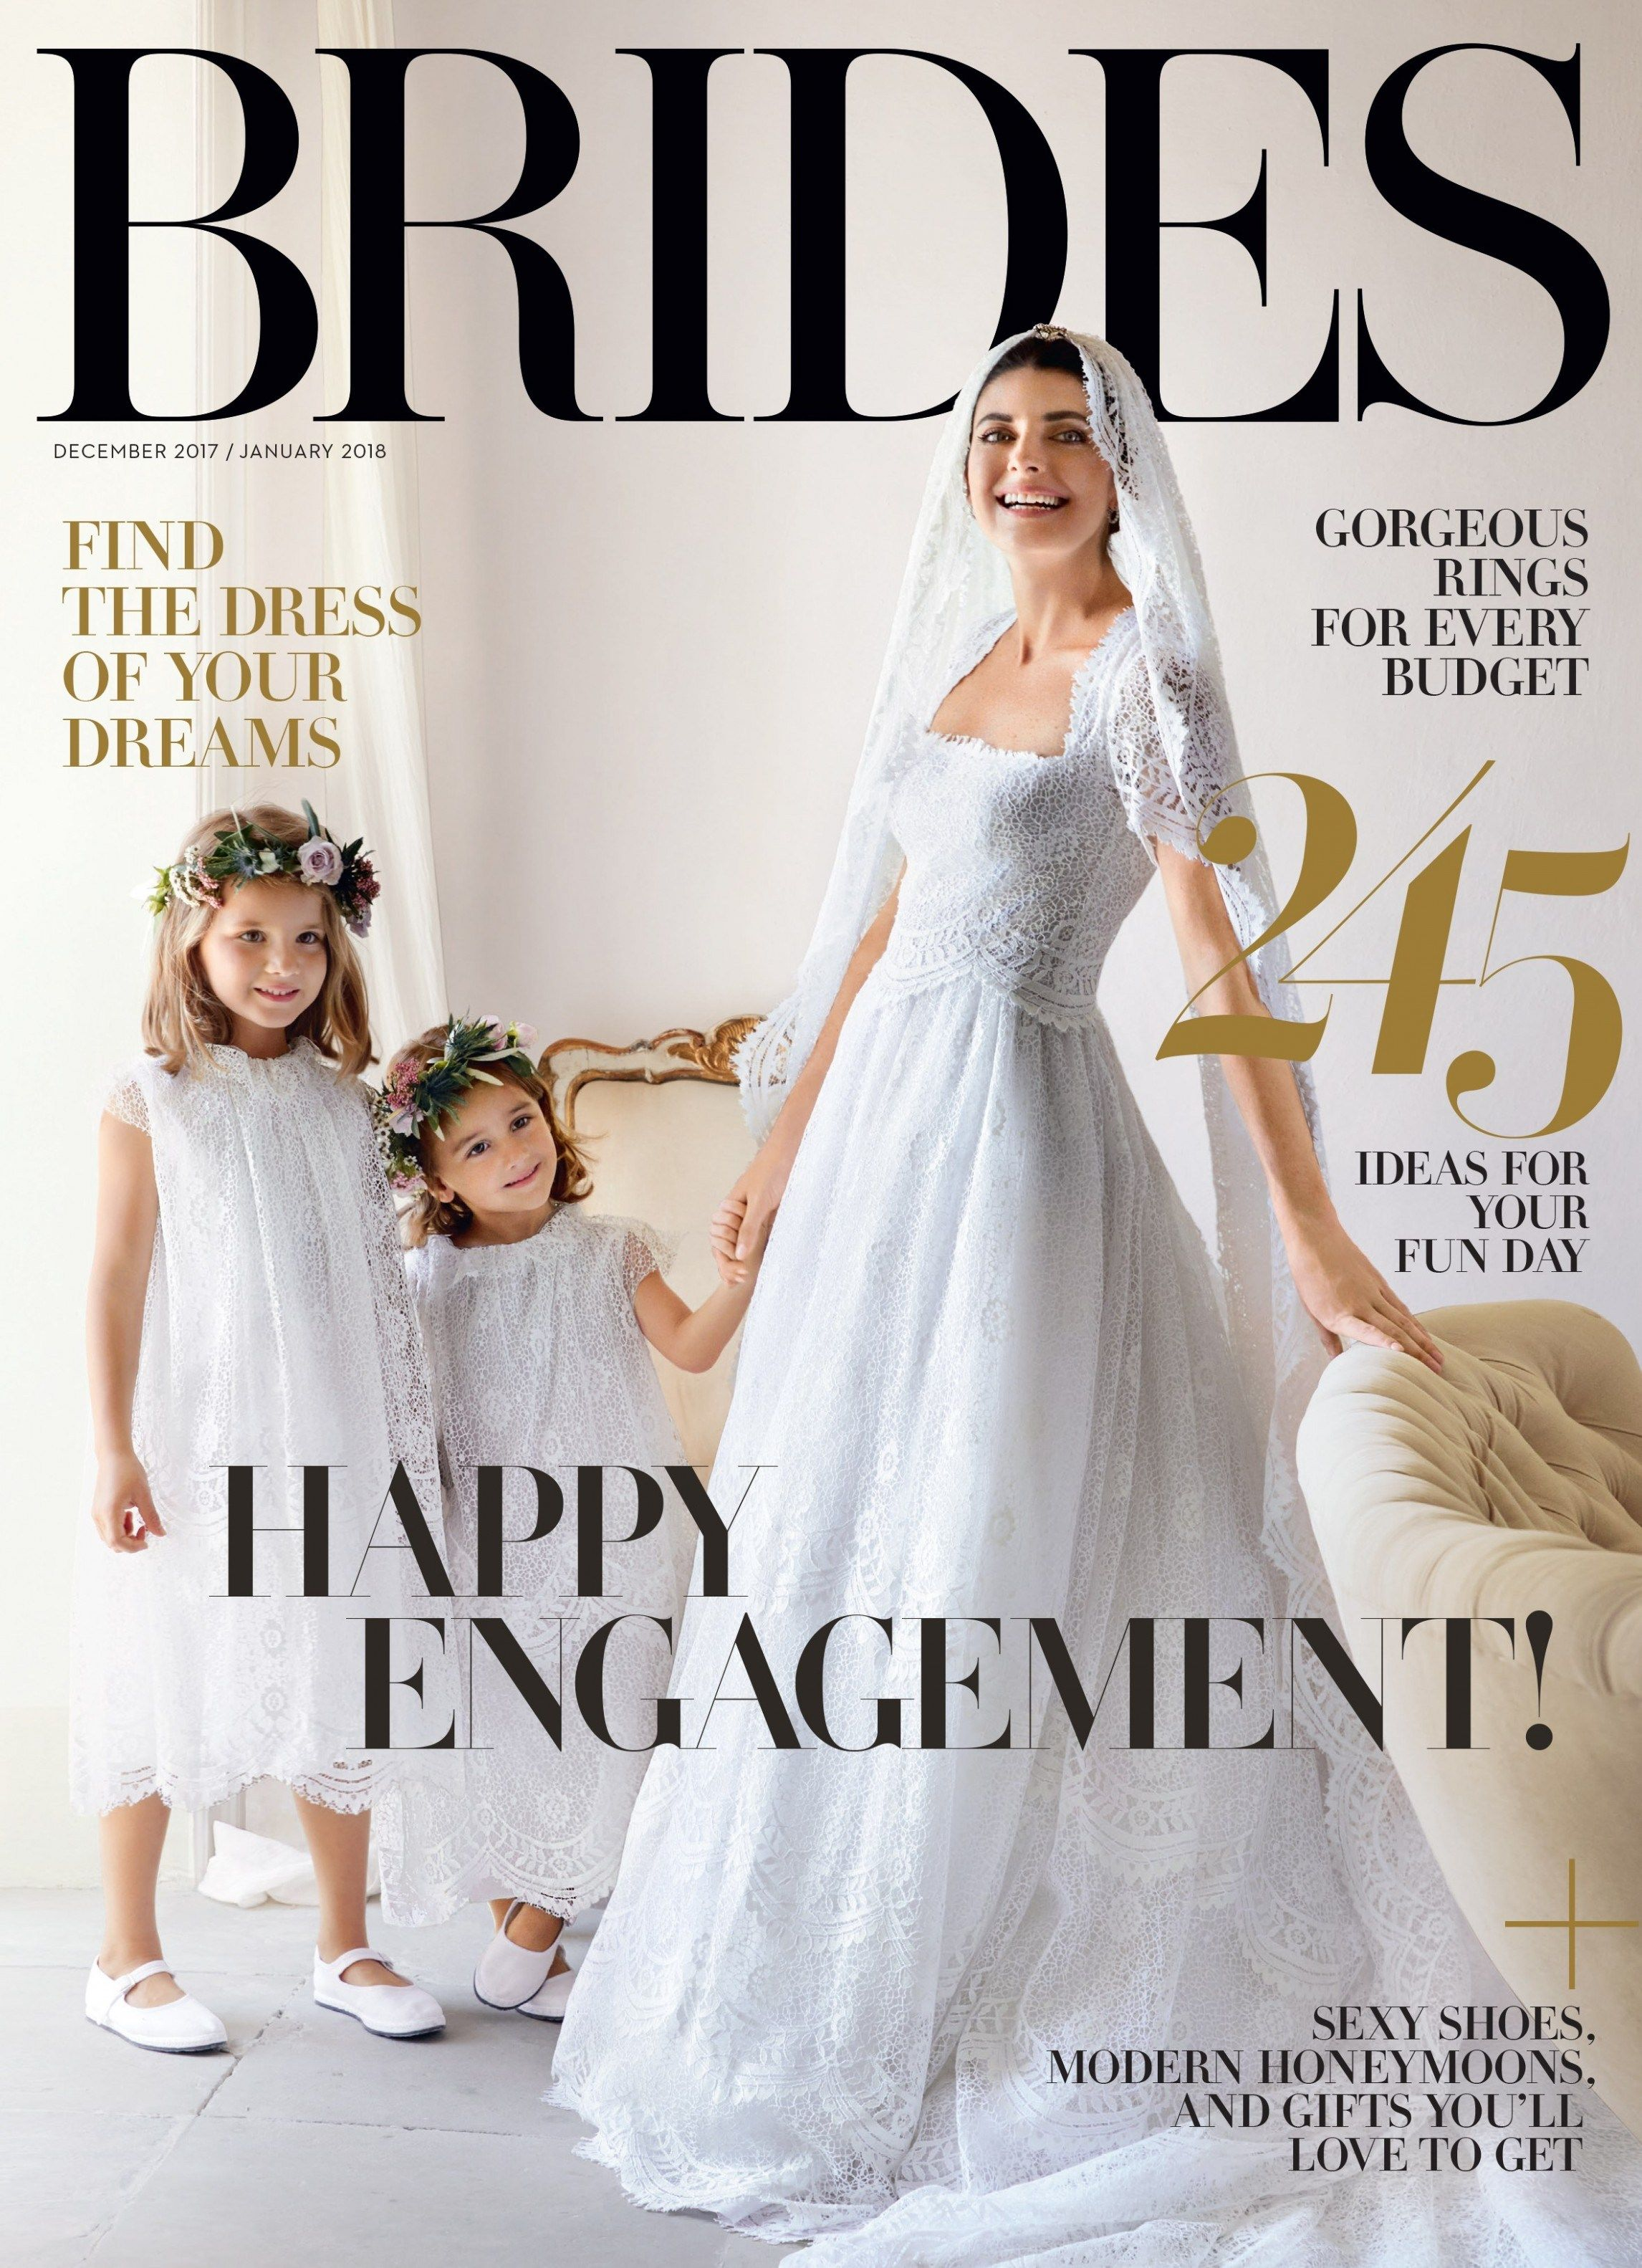 How To Have A Fantastic Bride Magazines With Minimal Spending Bride Magazines Https Ift Tt 2pa9ary Free Wedding Dress Wedding Dress Catalog Bride